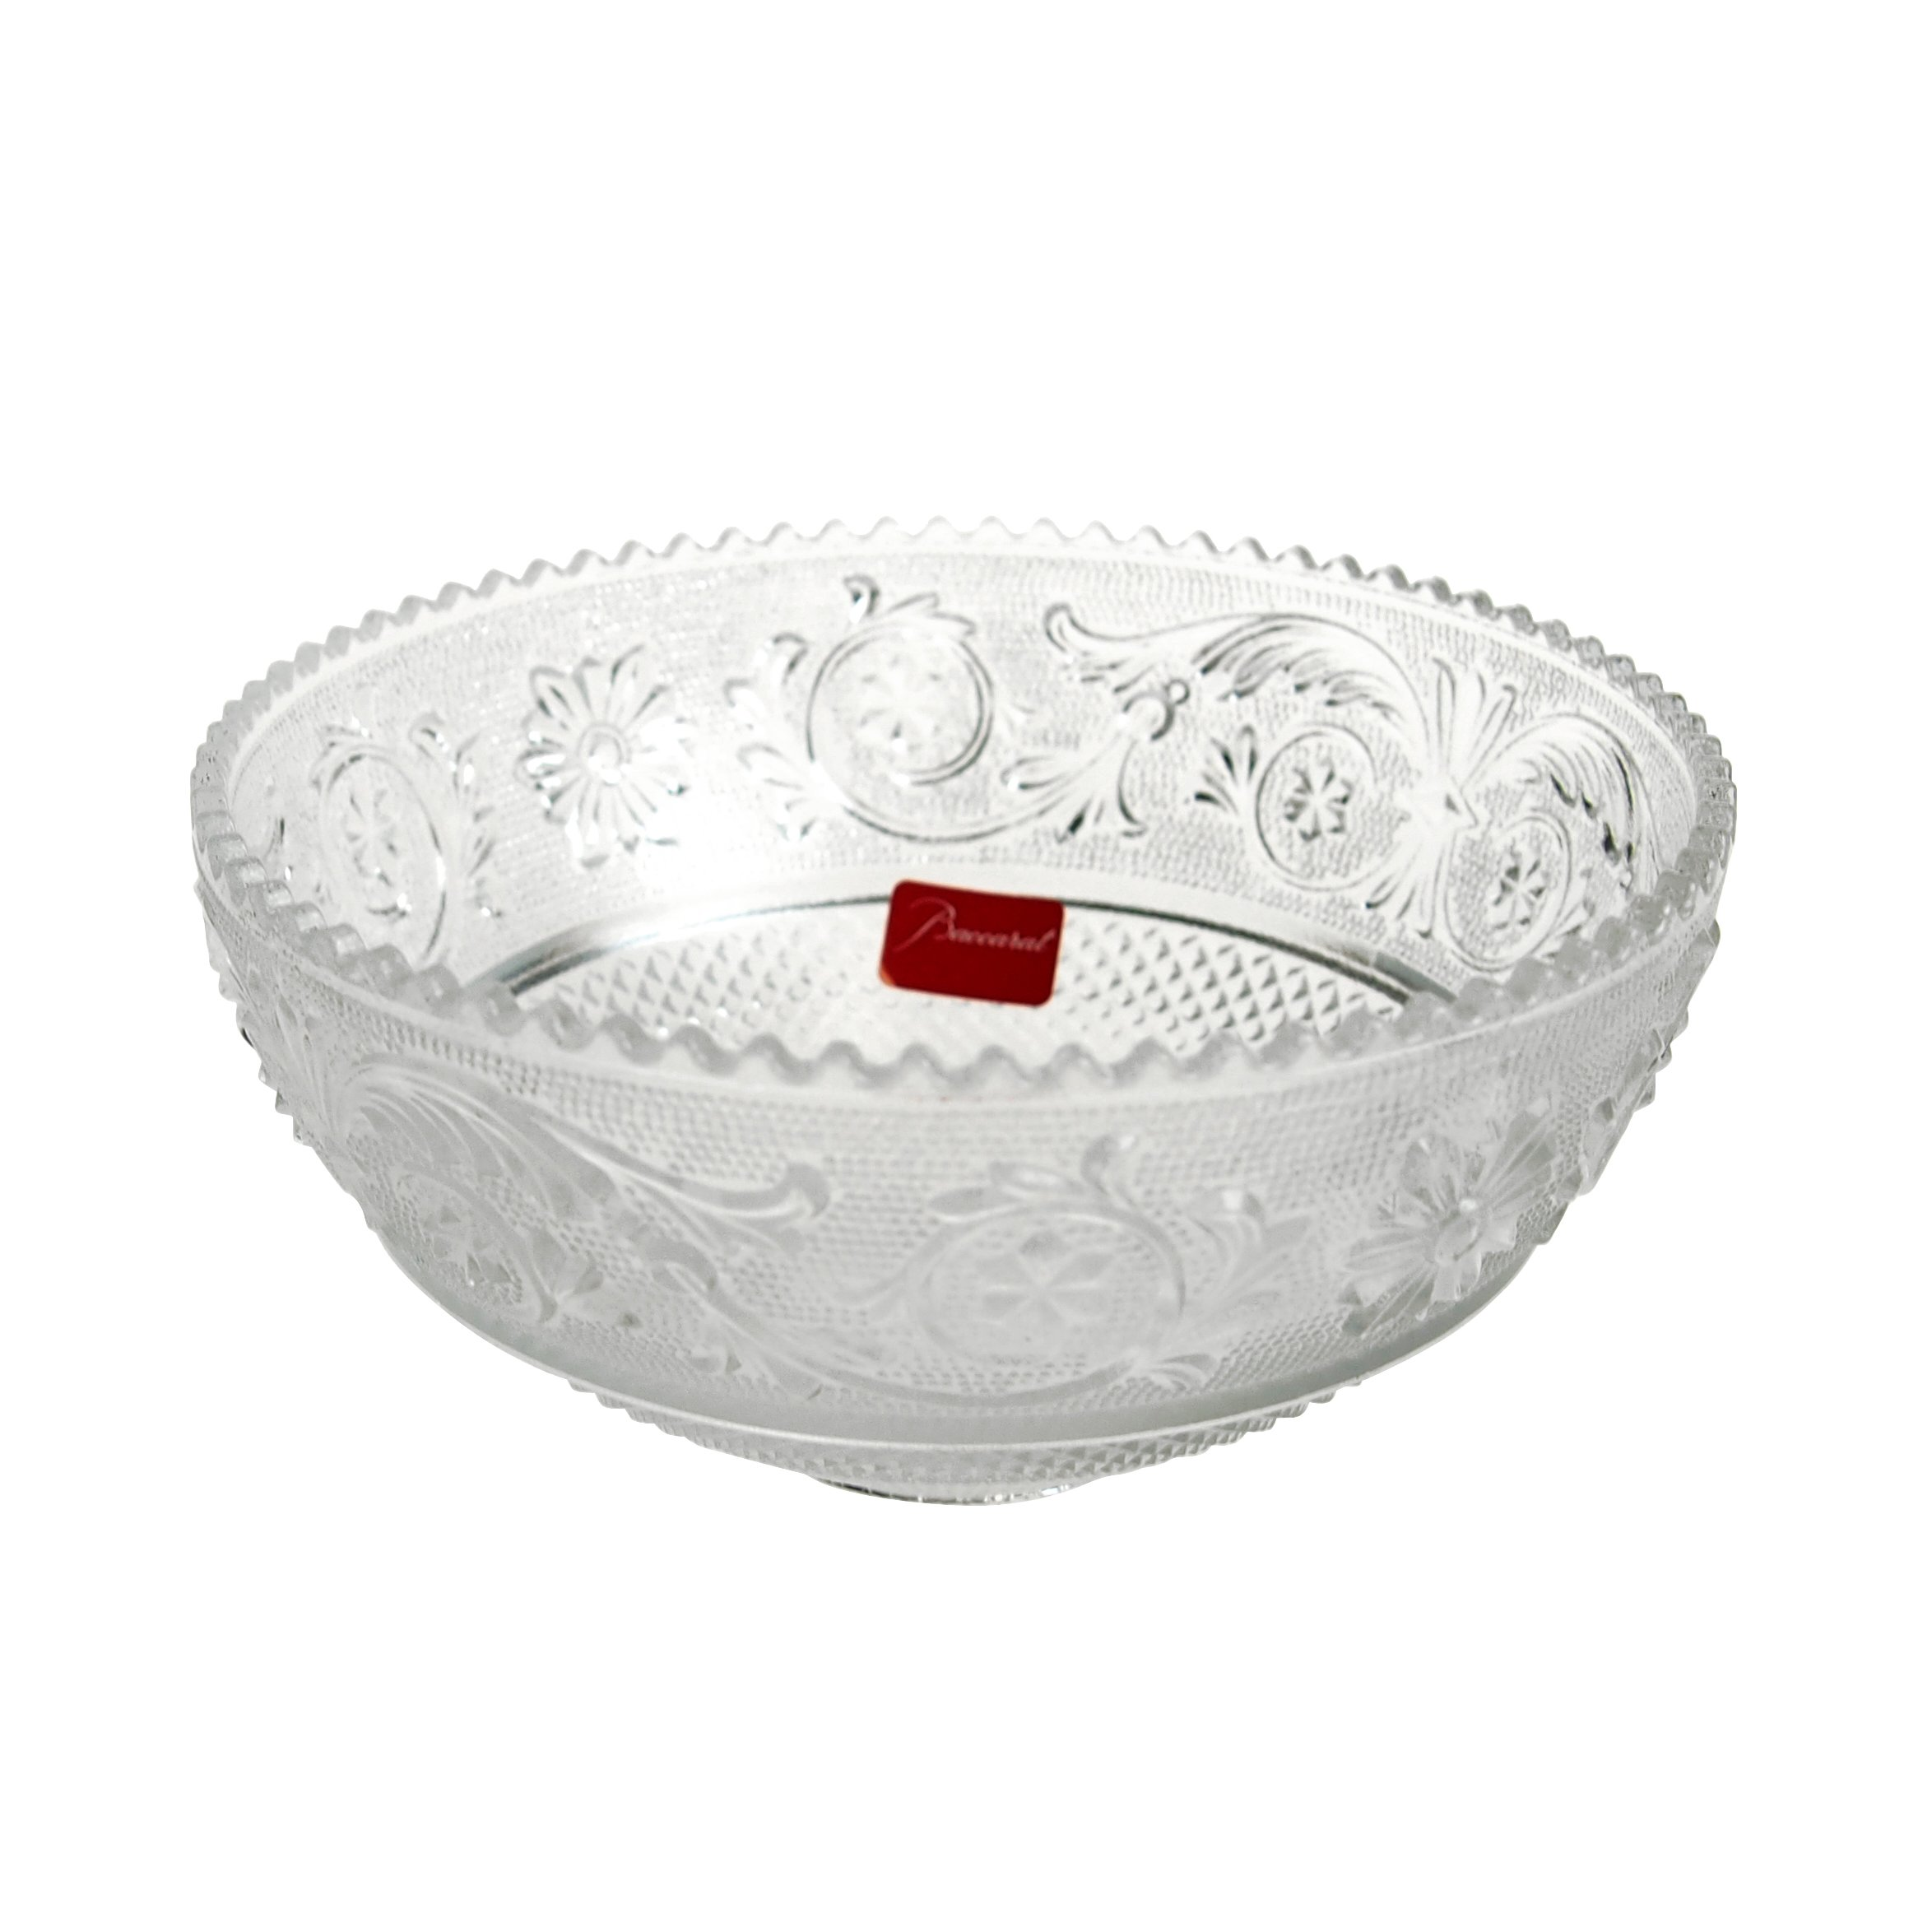 Baccarat Baccarat Arabesque Arabesque bowl dish 2103573 [ parallel import goods ] by BACCART ( Baccarat ) (Image #2)